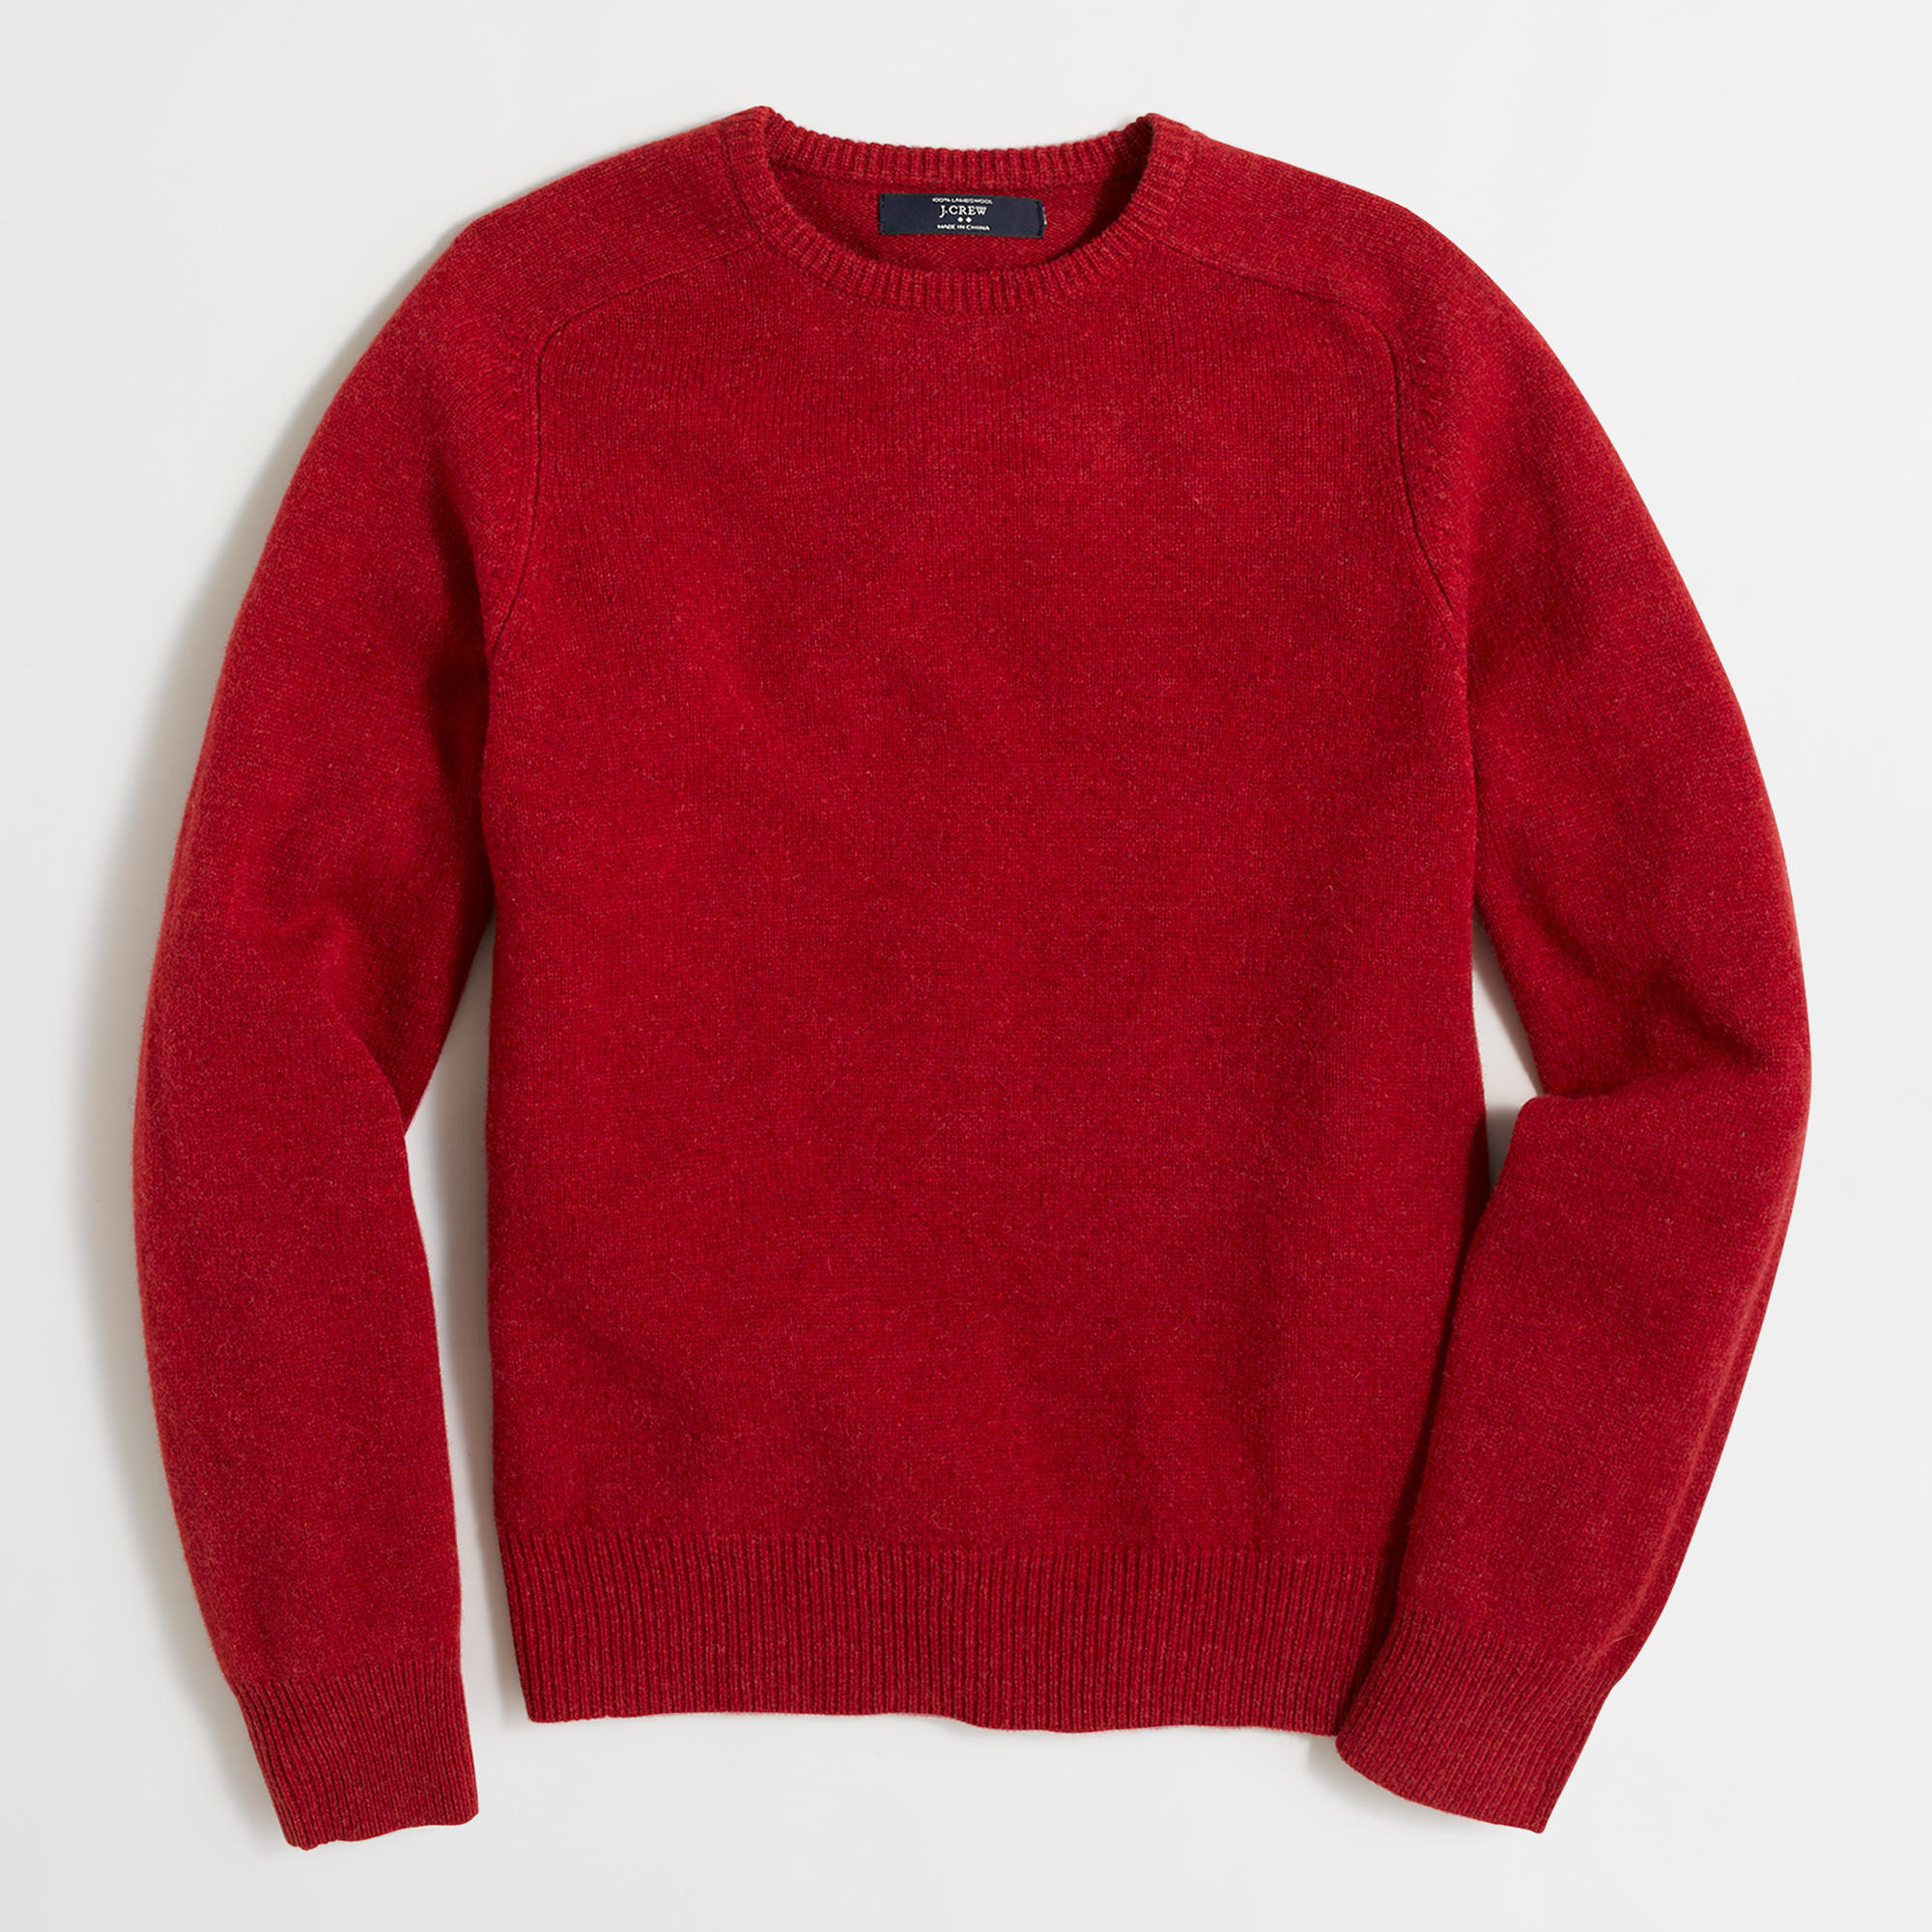 A reissued s lambswool sweater, originally designed for the 'Burberrys Sport Collection'.